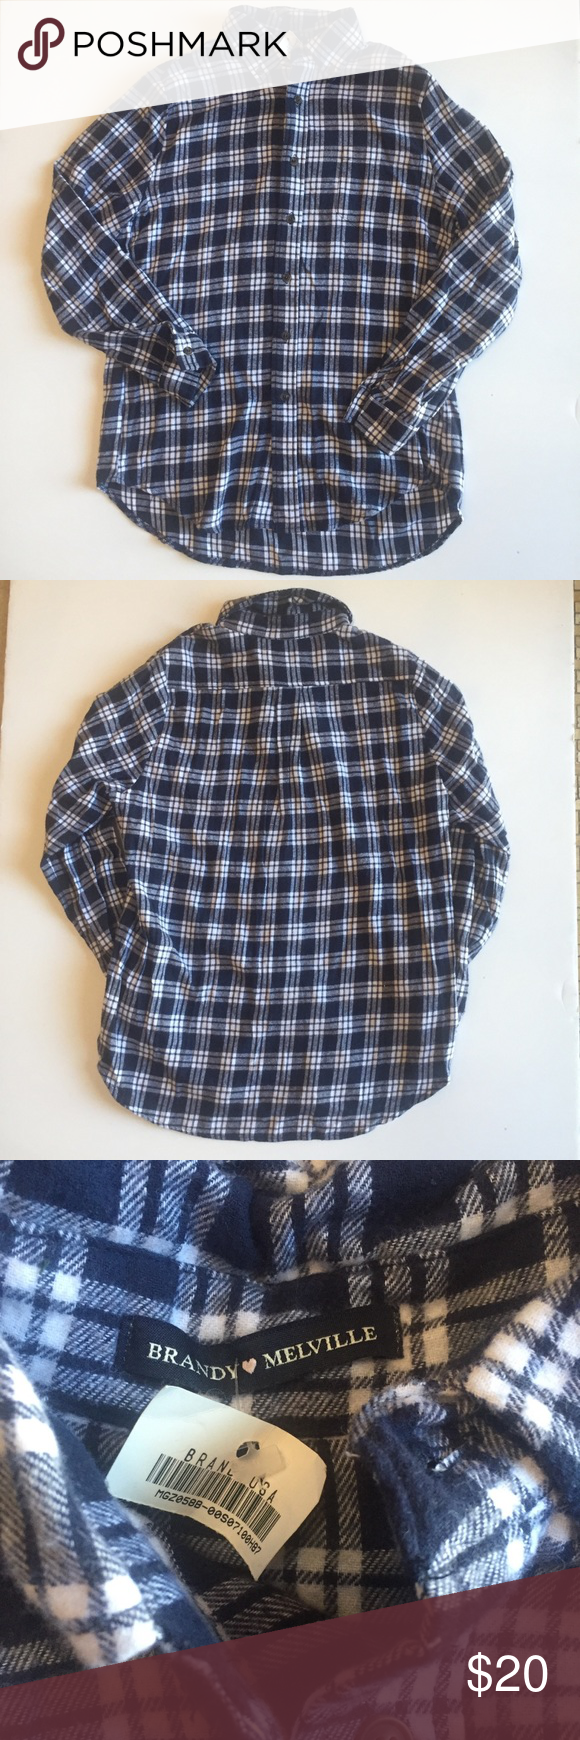 676472312aa NWT Brandy Melville flannel long sleeve blue NWT Brandy Melville Flannel  Long Sleeve Warm and comfy Flat lay Measurements  Armpit to Armpit  20 in  Length  ...